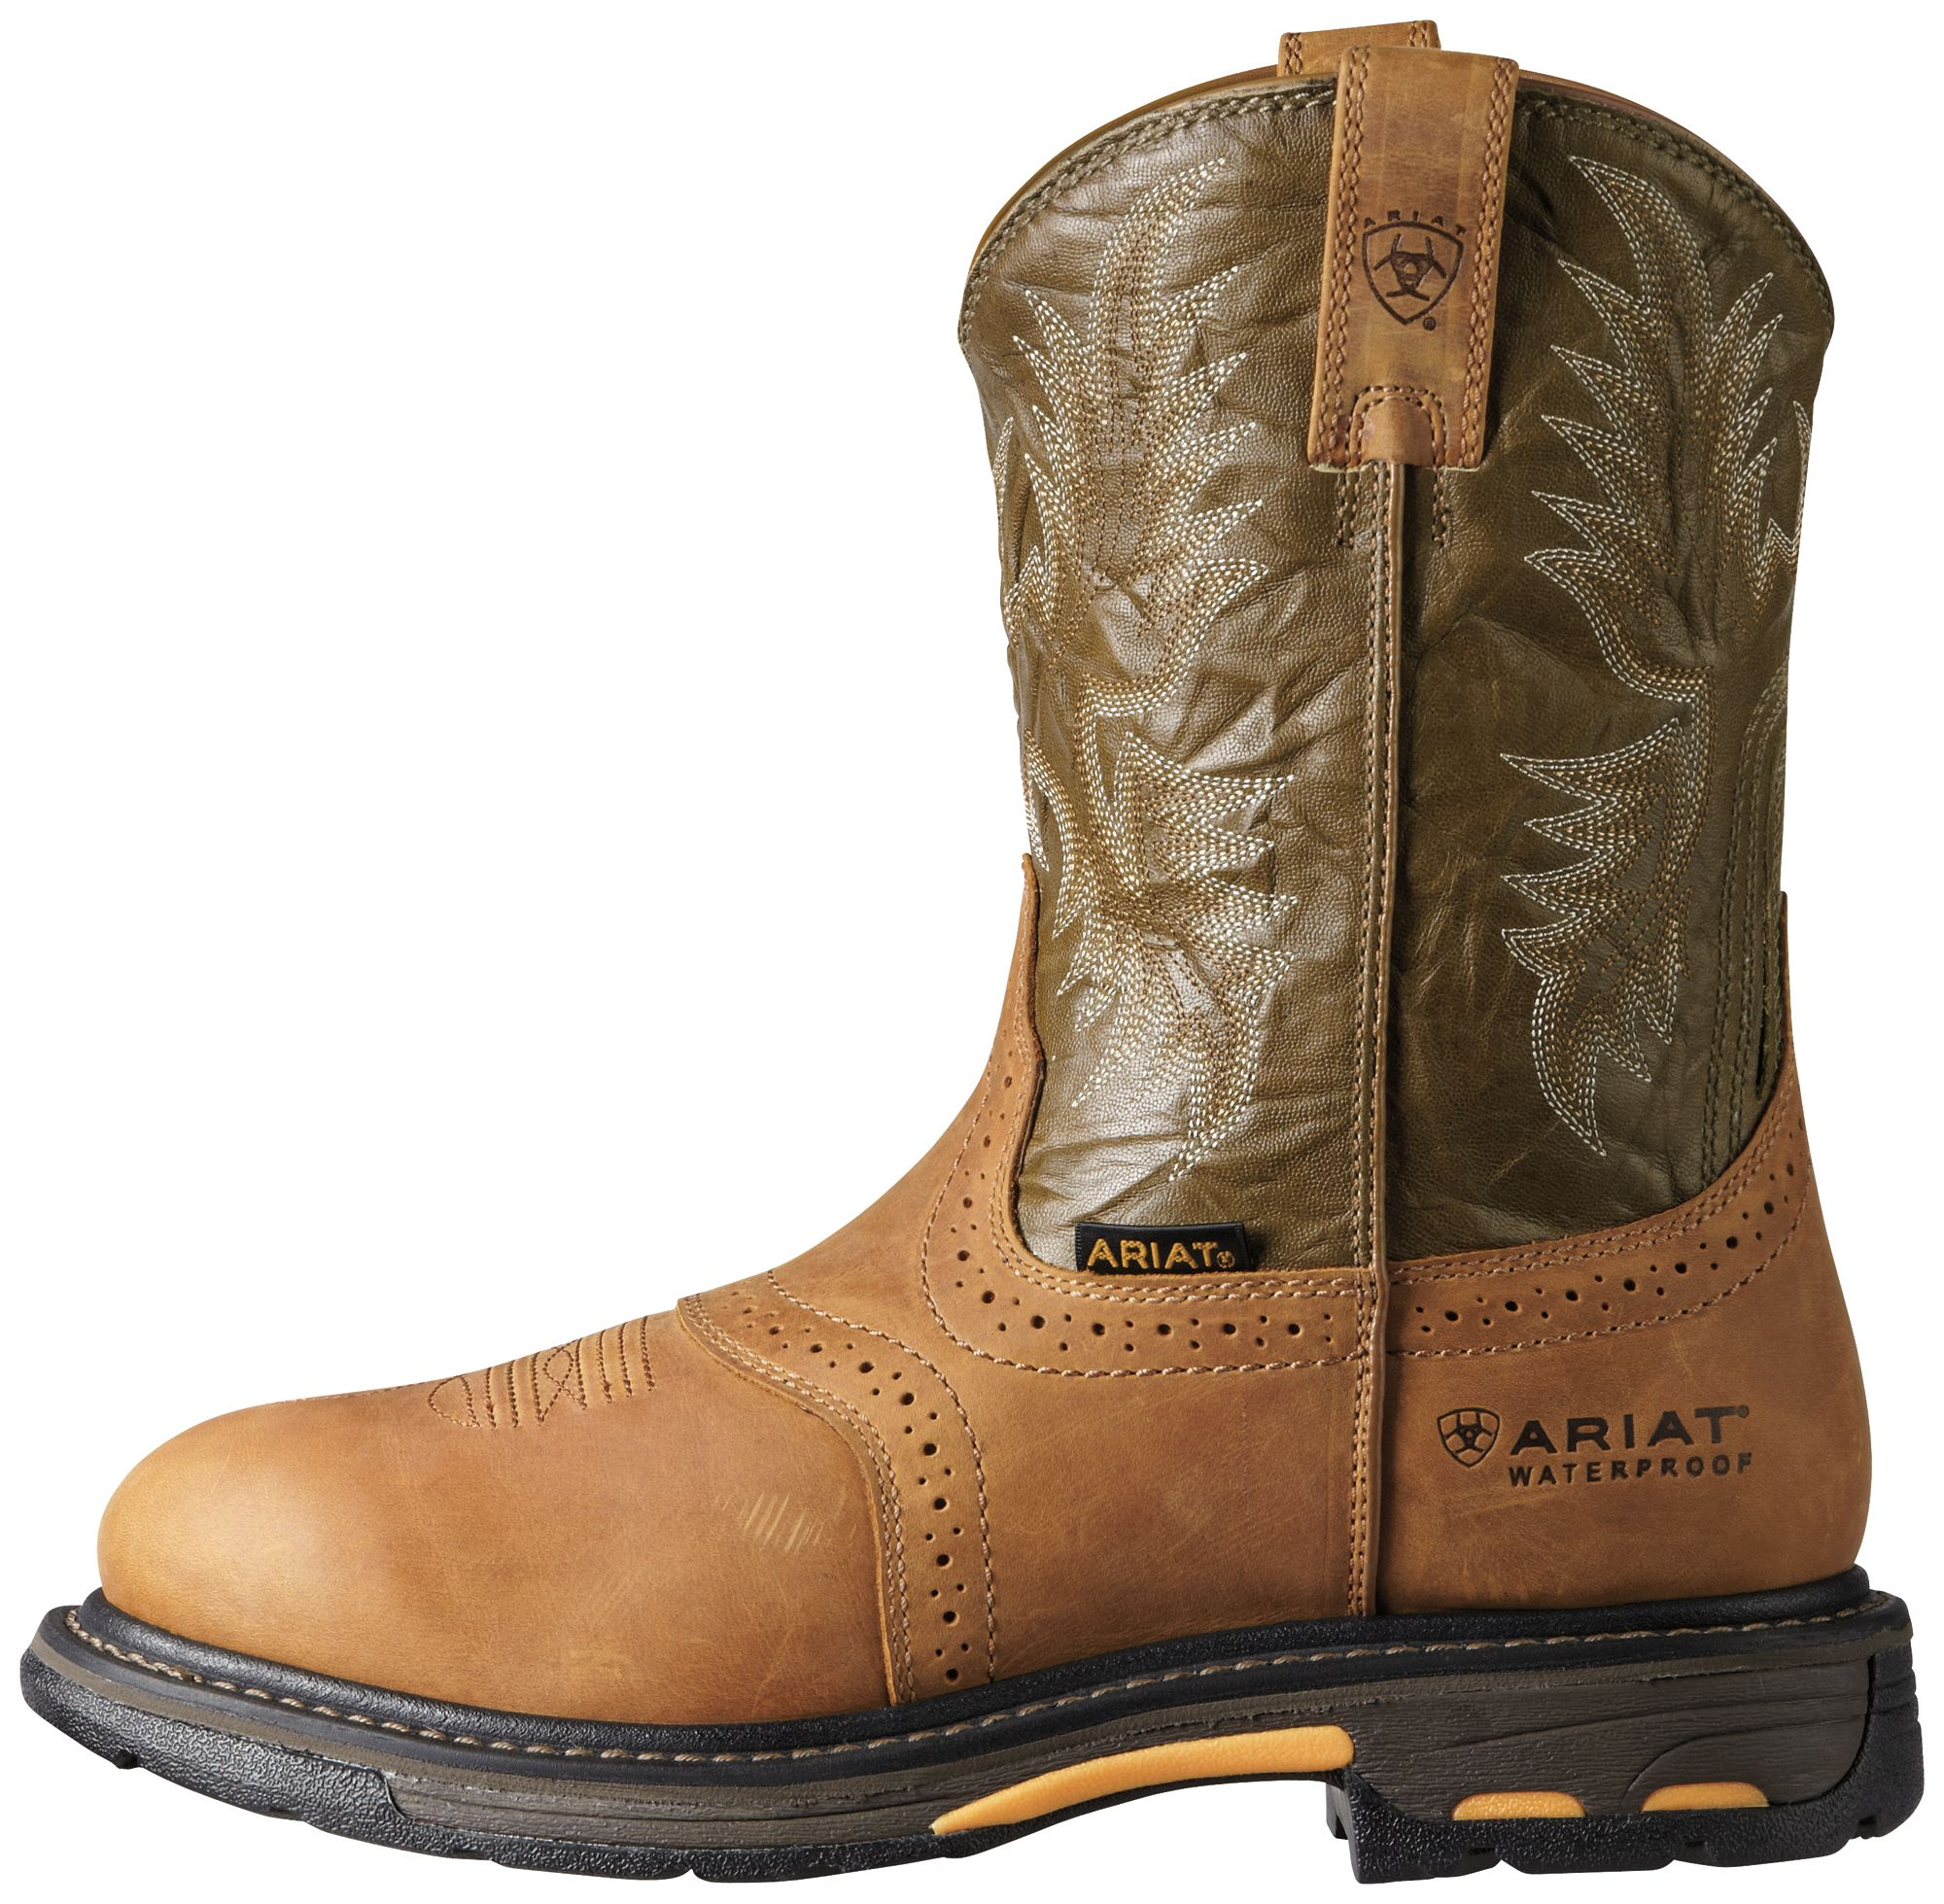 Ariat Boots On Sale buDvbmzg